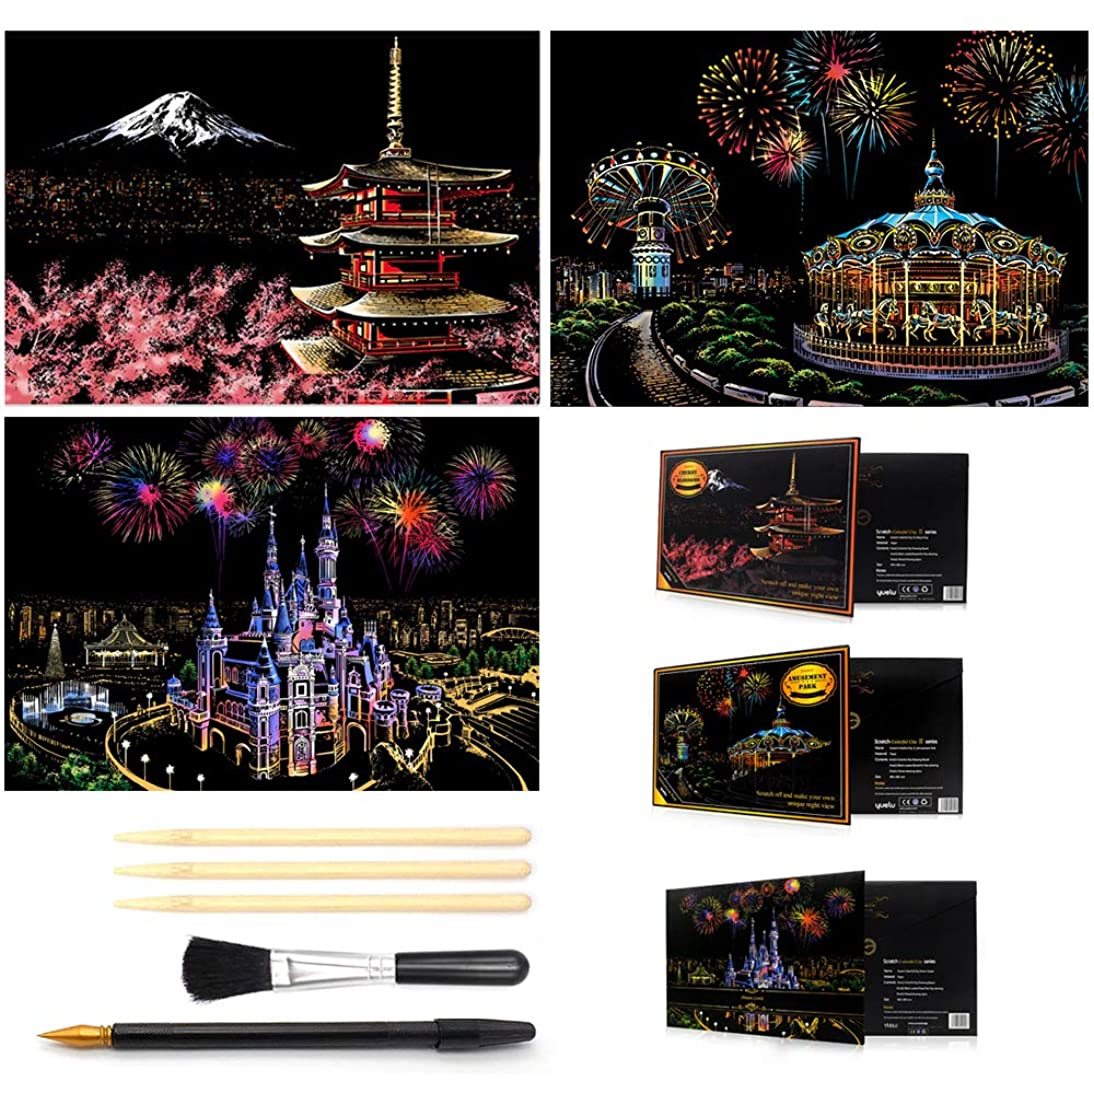 wandeneng Scratch Art Paper Rainbow Painting Sketch Pad DIY Night View Scratchboard for Adults and Kids - 3Packs, 16 X 11.5 Inches (A)